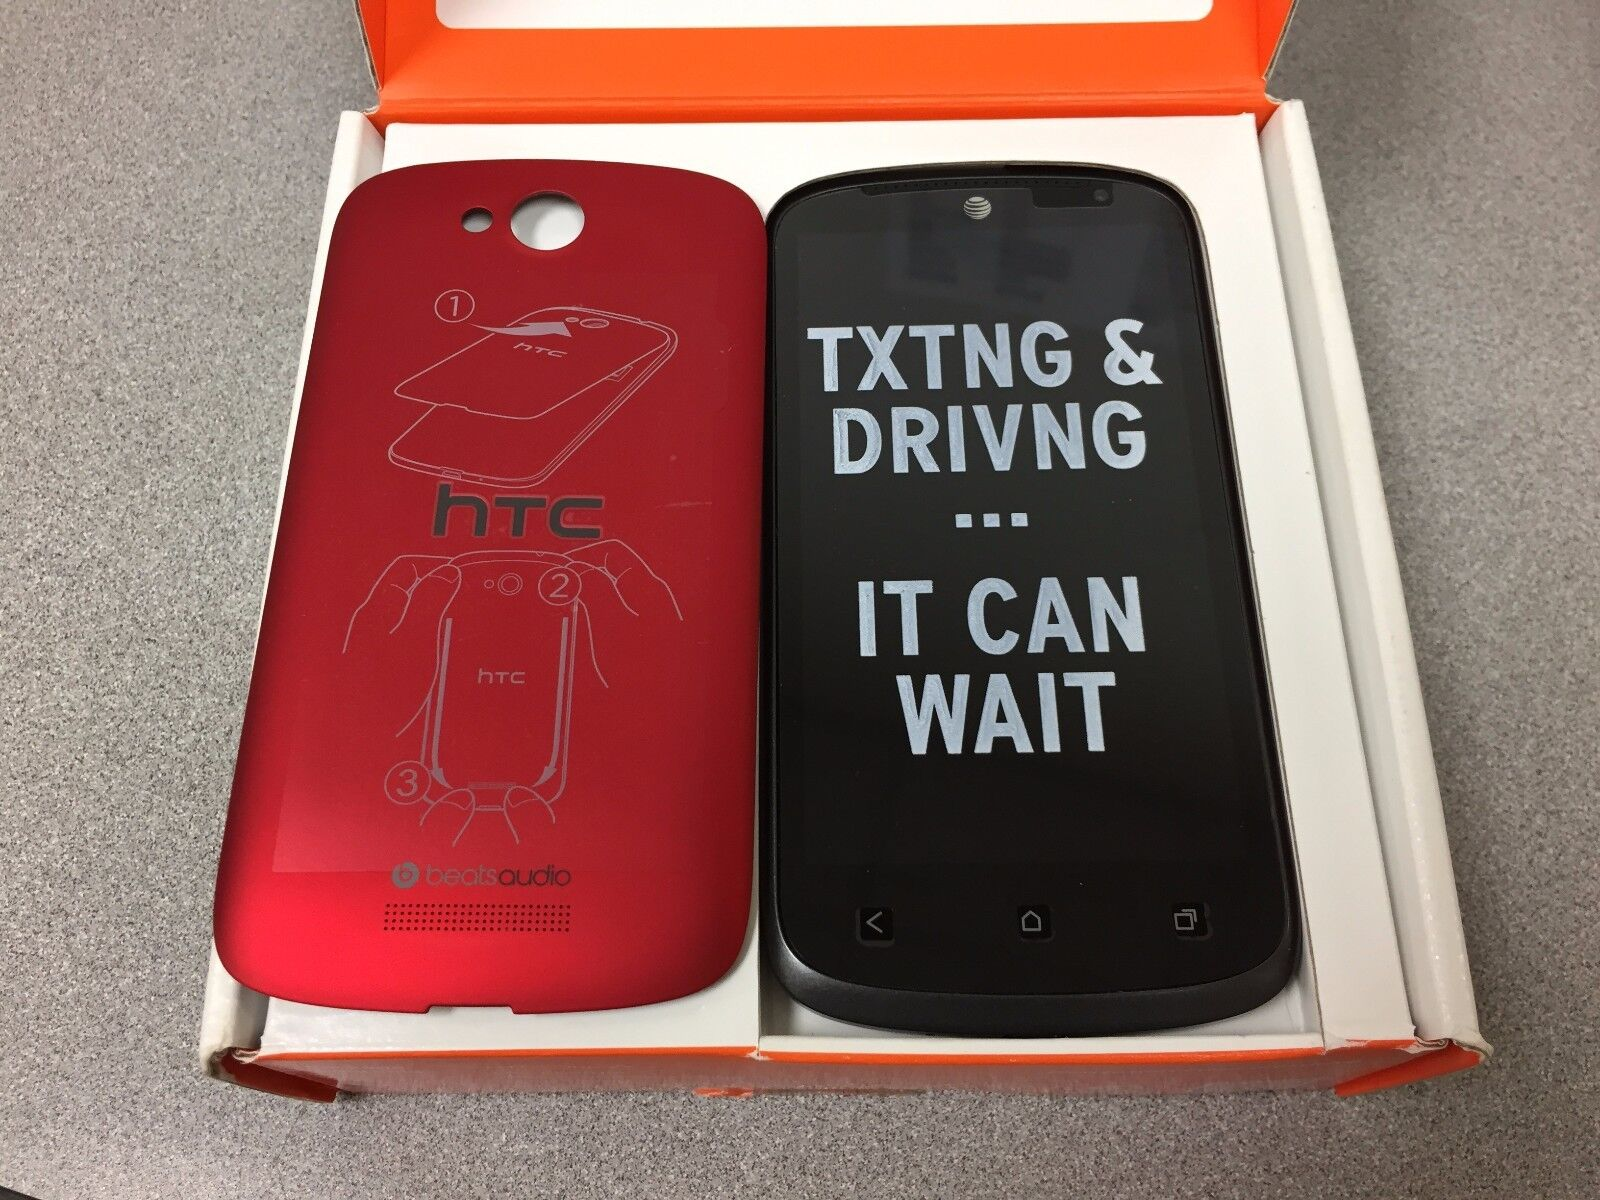 Htc One - HTC One VX - 8GB - Red  (Unlocked) AT&T Smartphone. Fair Cosmetic w Accessories